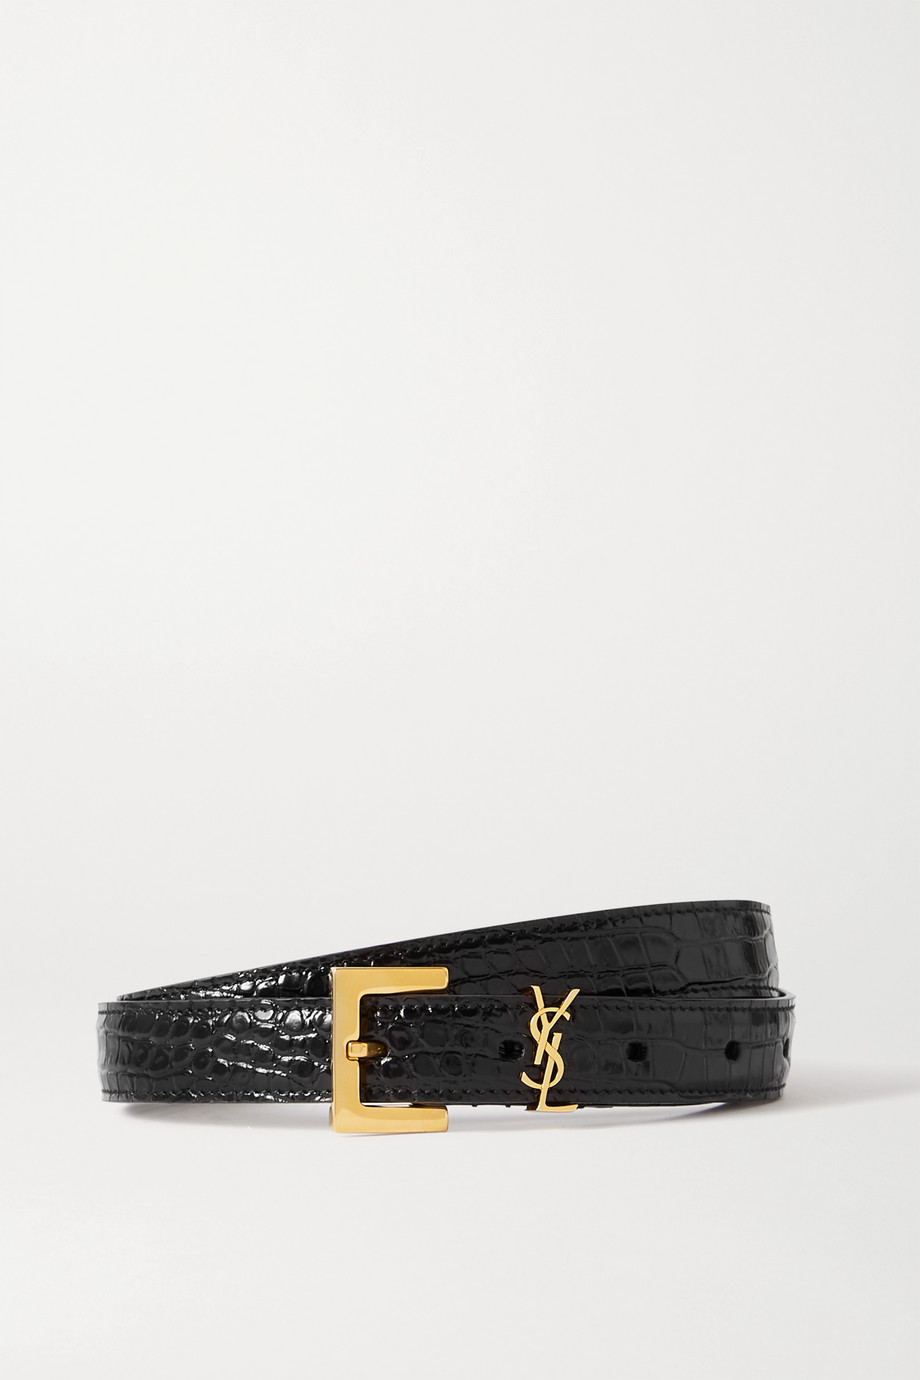 SAINT LAURENT Embellished croc-effect leather belt